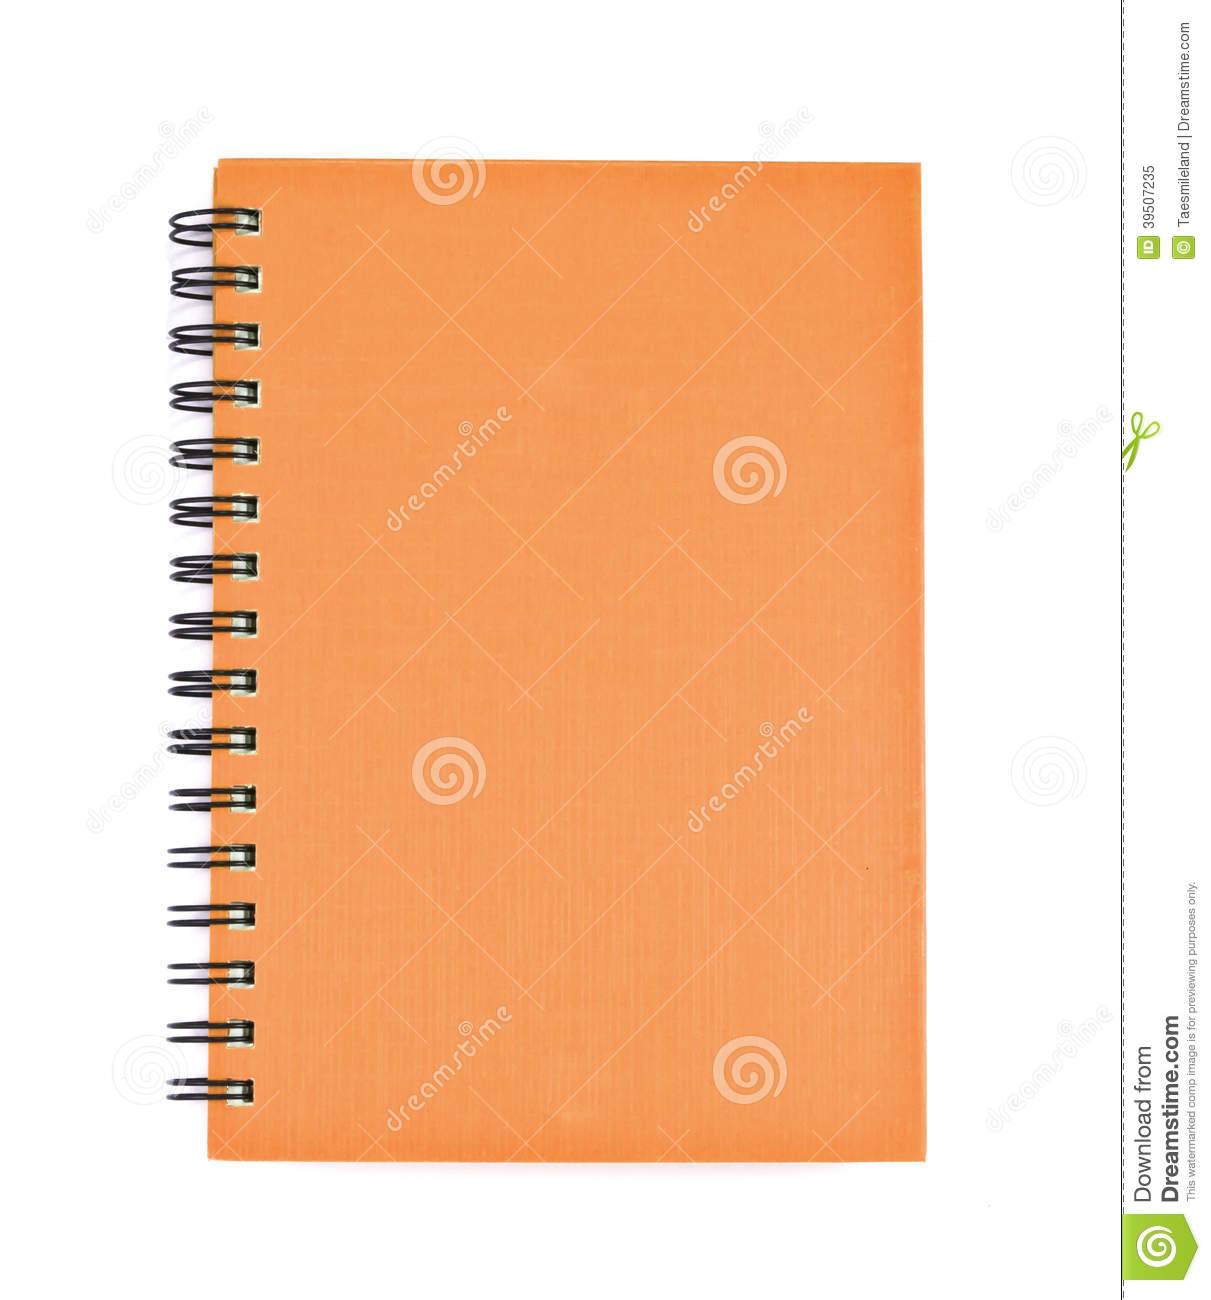 Isolated notebook on white.